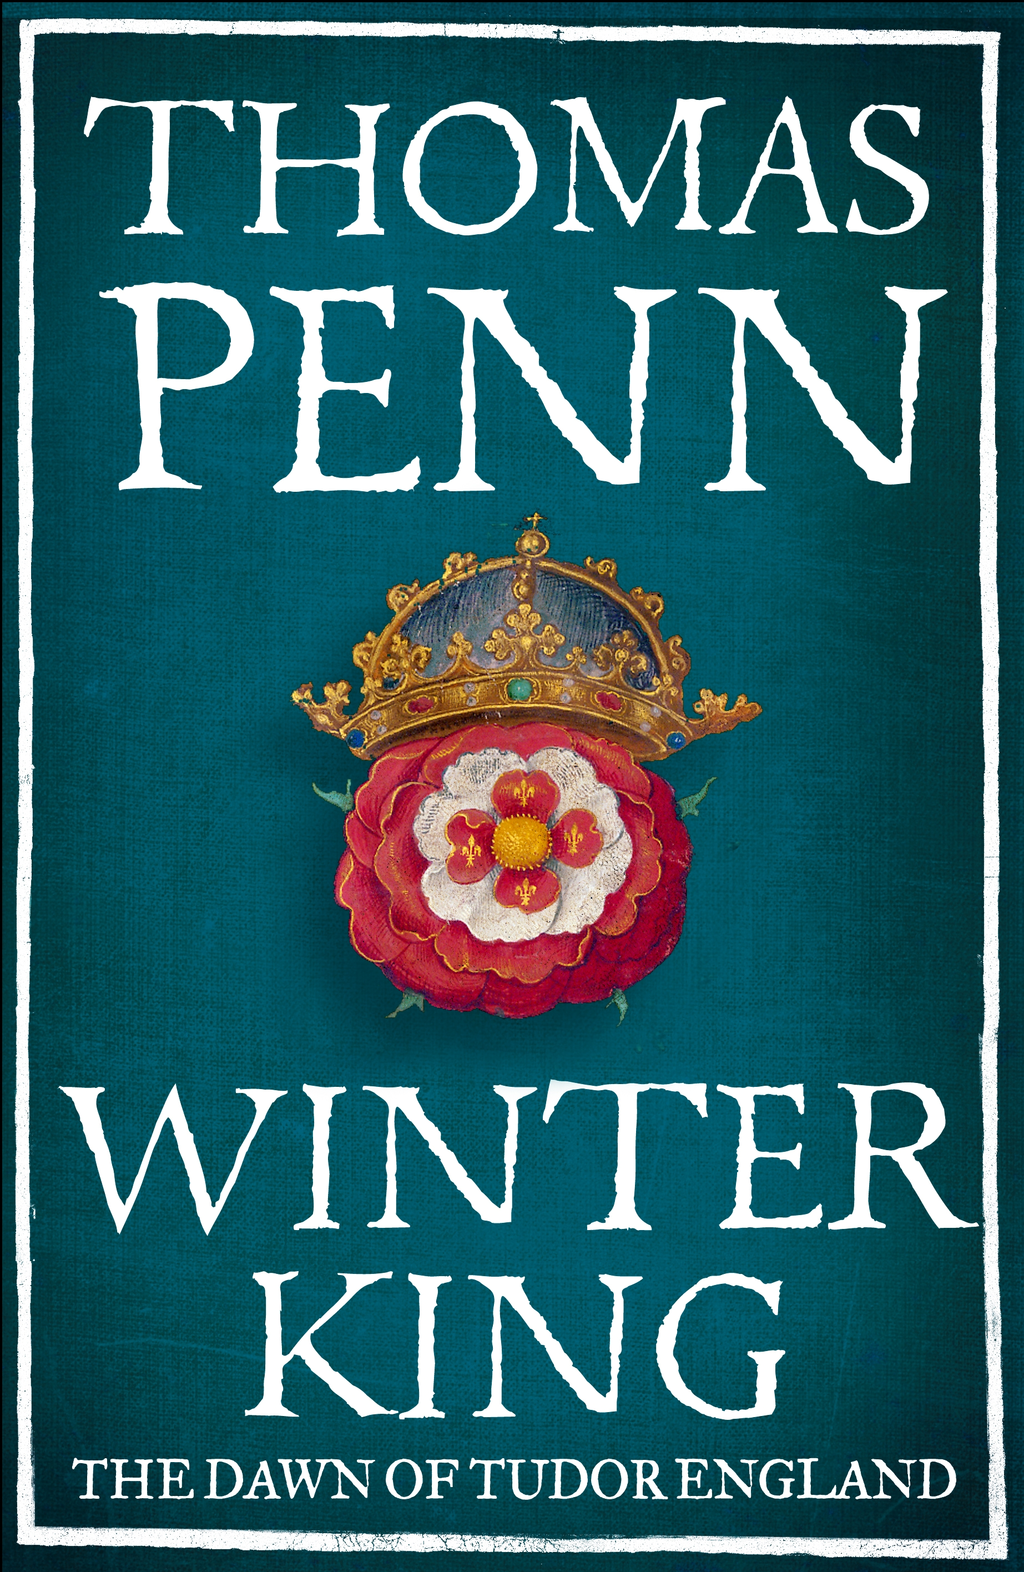 Winter King: The Dawn of Tudor England The Dawn of Tudor England